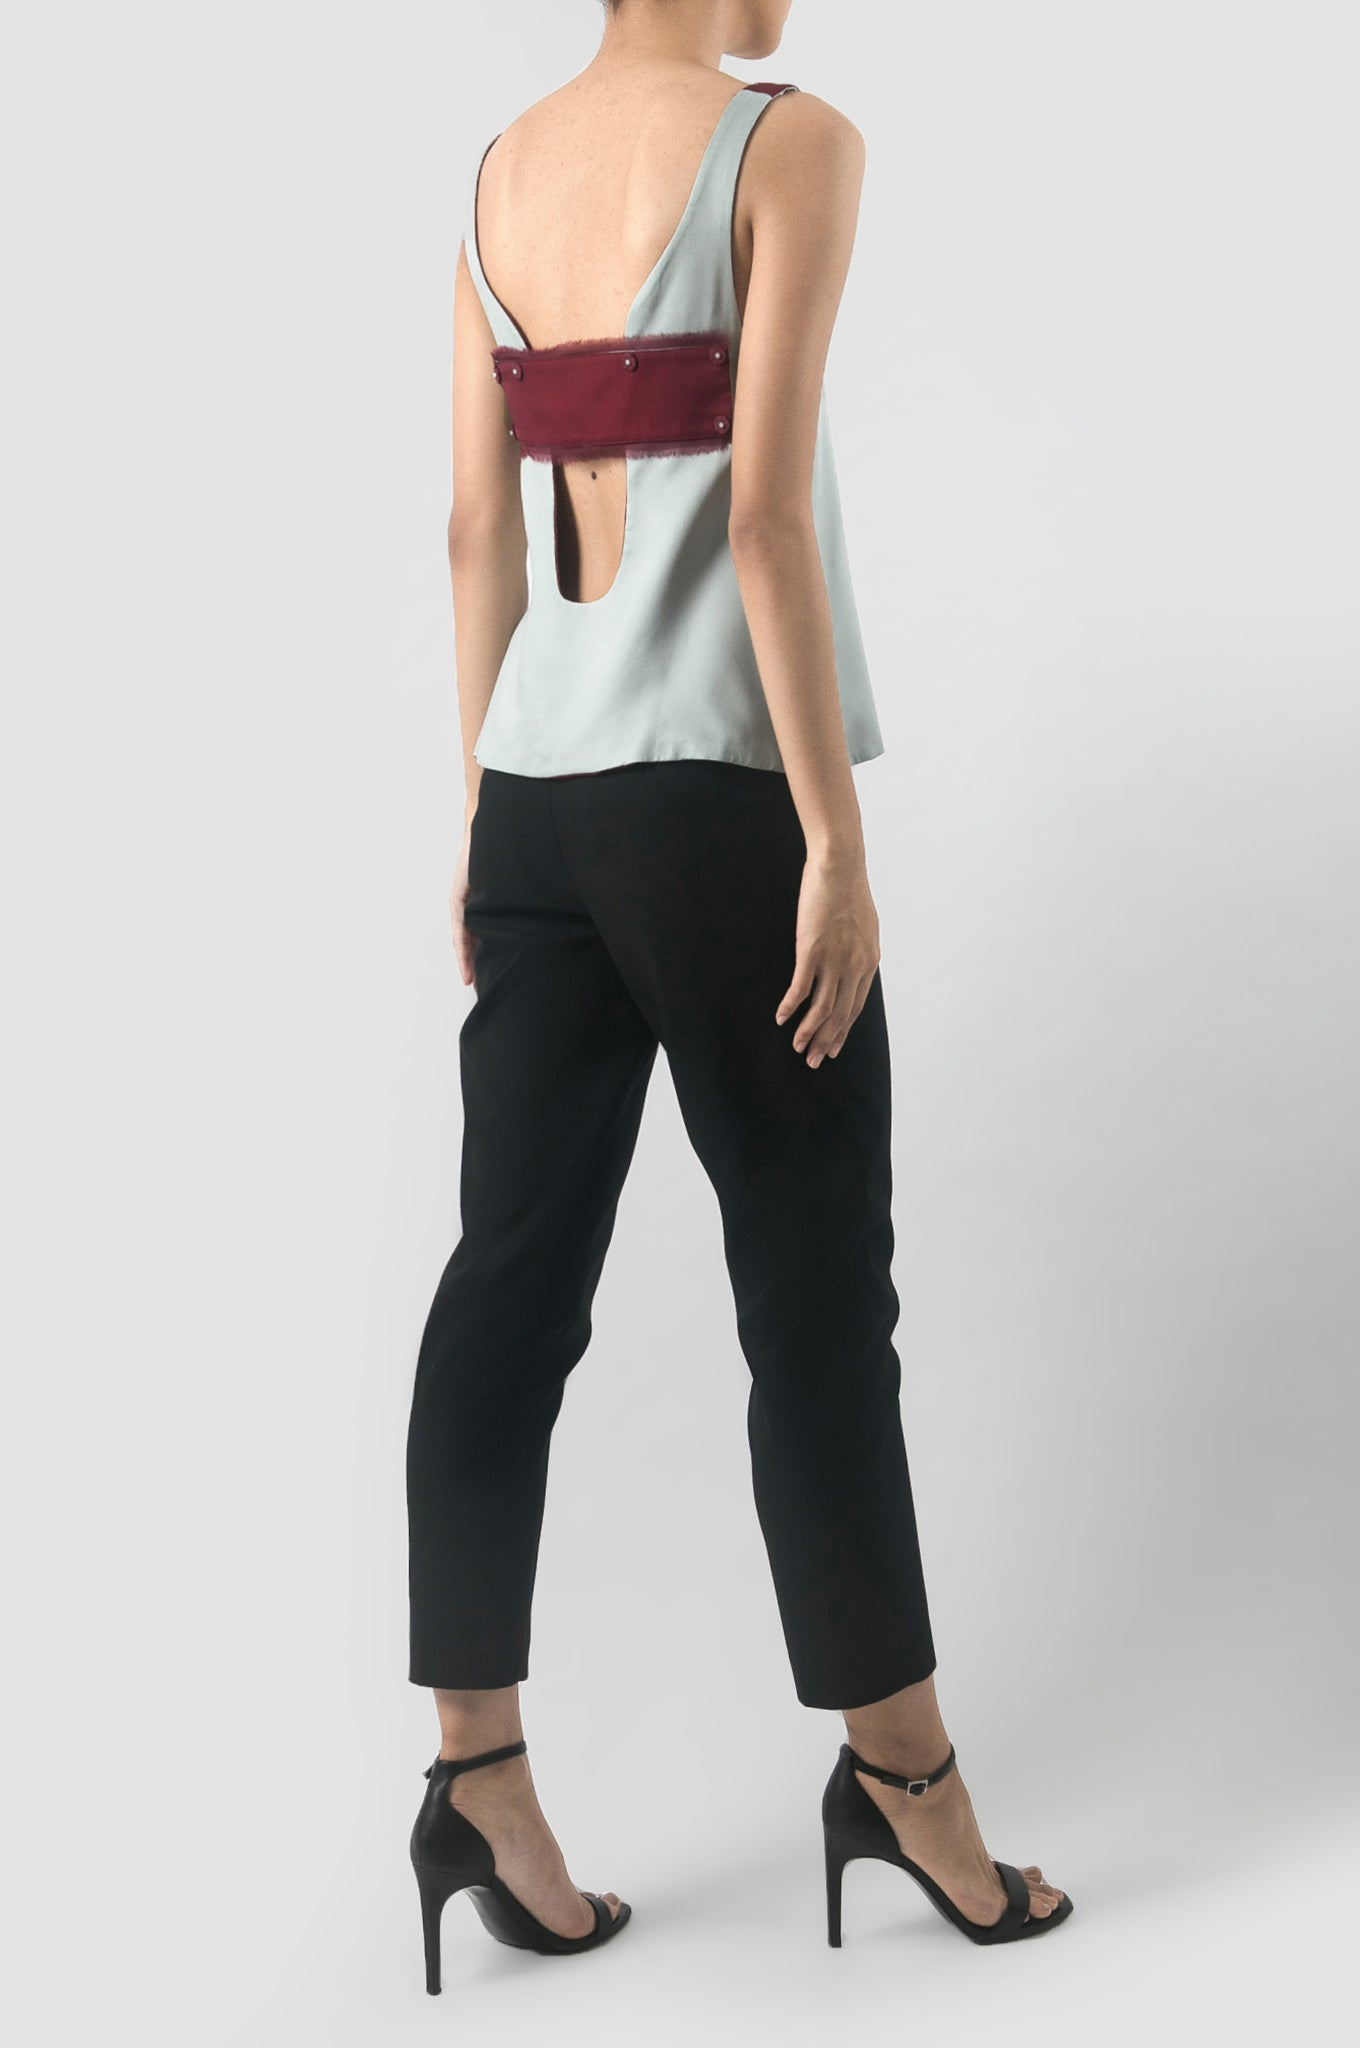 Icy Blue/Maroon Kama Reversible Top